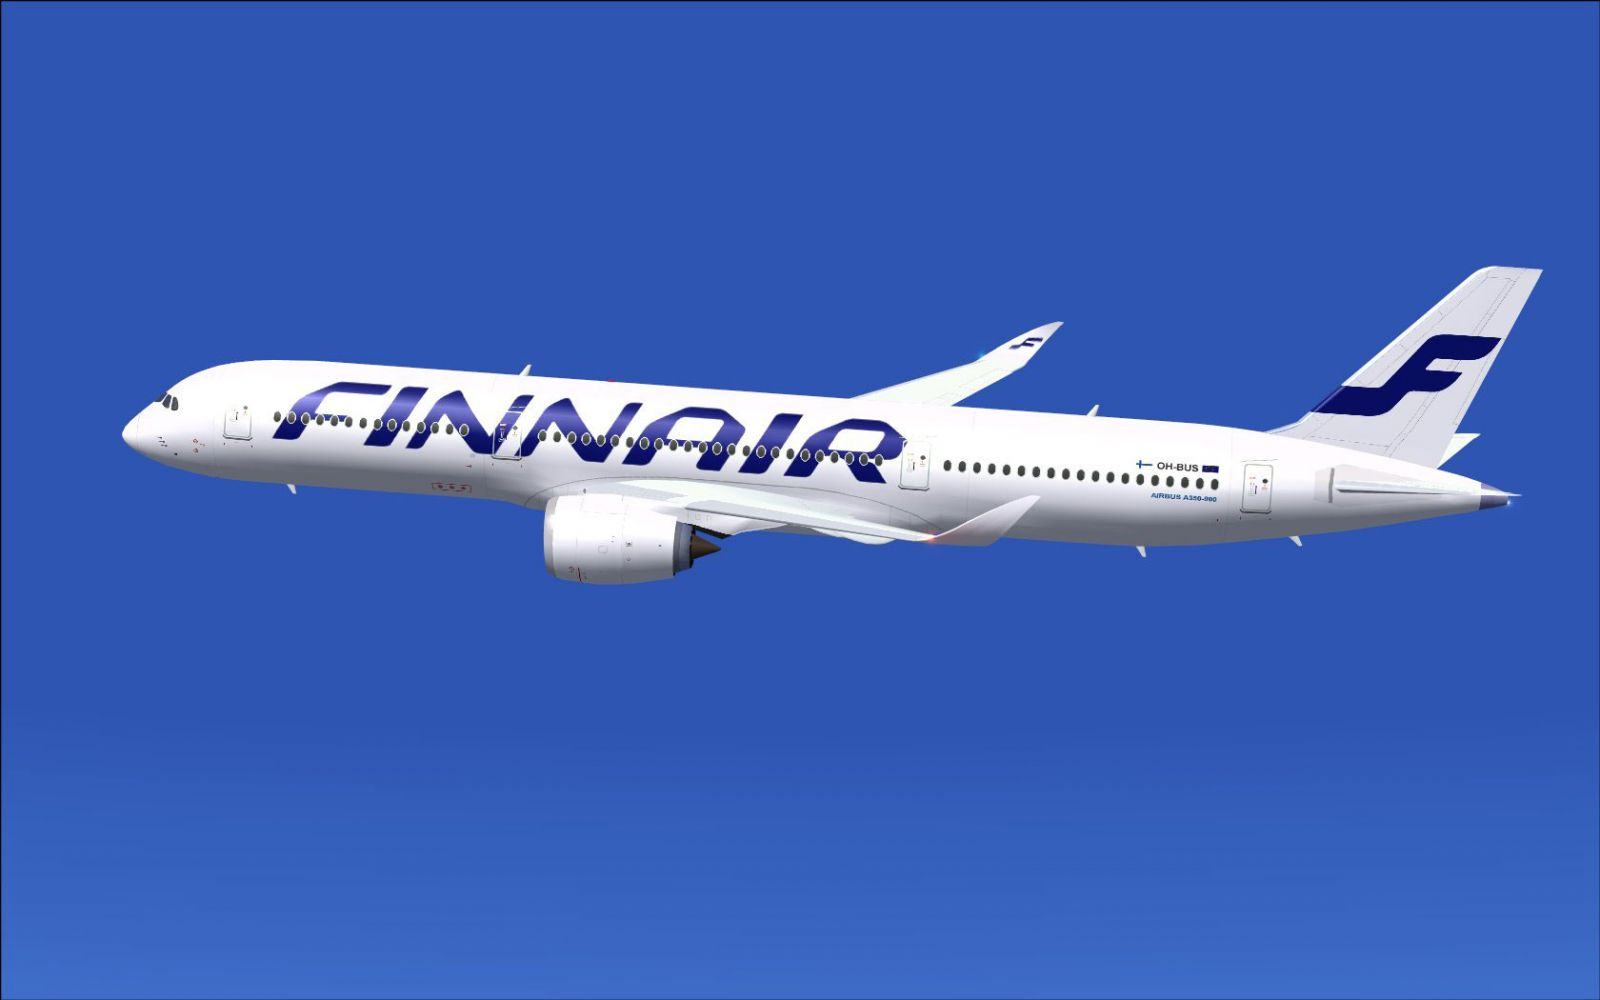 where to fly model airplanes with Fsx Finnair Airbus A350 900 on Overview furthermore A380 Le Patron D Airbus Assure Avoir Au Moins Dix Ans De Visibilite Pour Le Plus Gros Avion Du Monde 561803 as well Boeing 777 One Of Safest Planes In History Emirates Crash 2016 8 additionally Mobile likewise Guillows F6f 93 Hellcat Grumman 16th Scale Balsa Flying Model Kit.